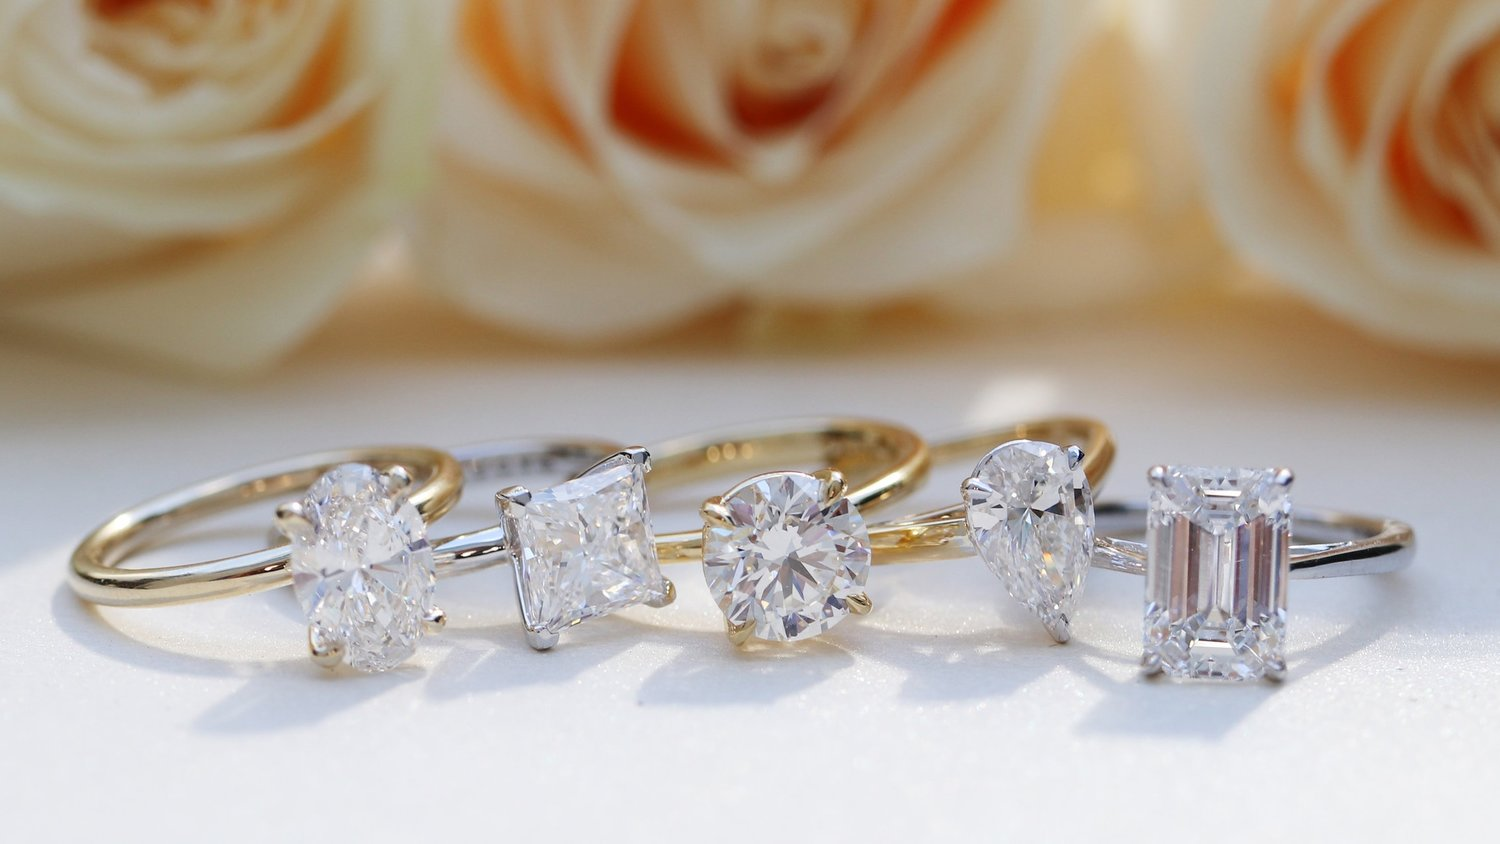 When Not To Wear Your Lab Diamond Engagement Ring